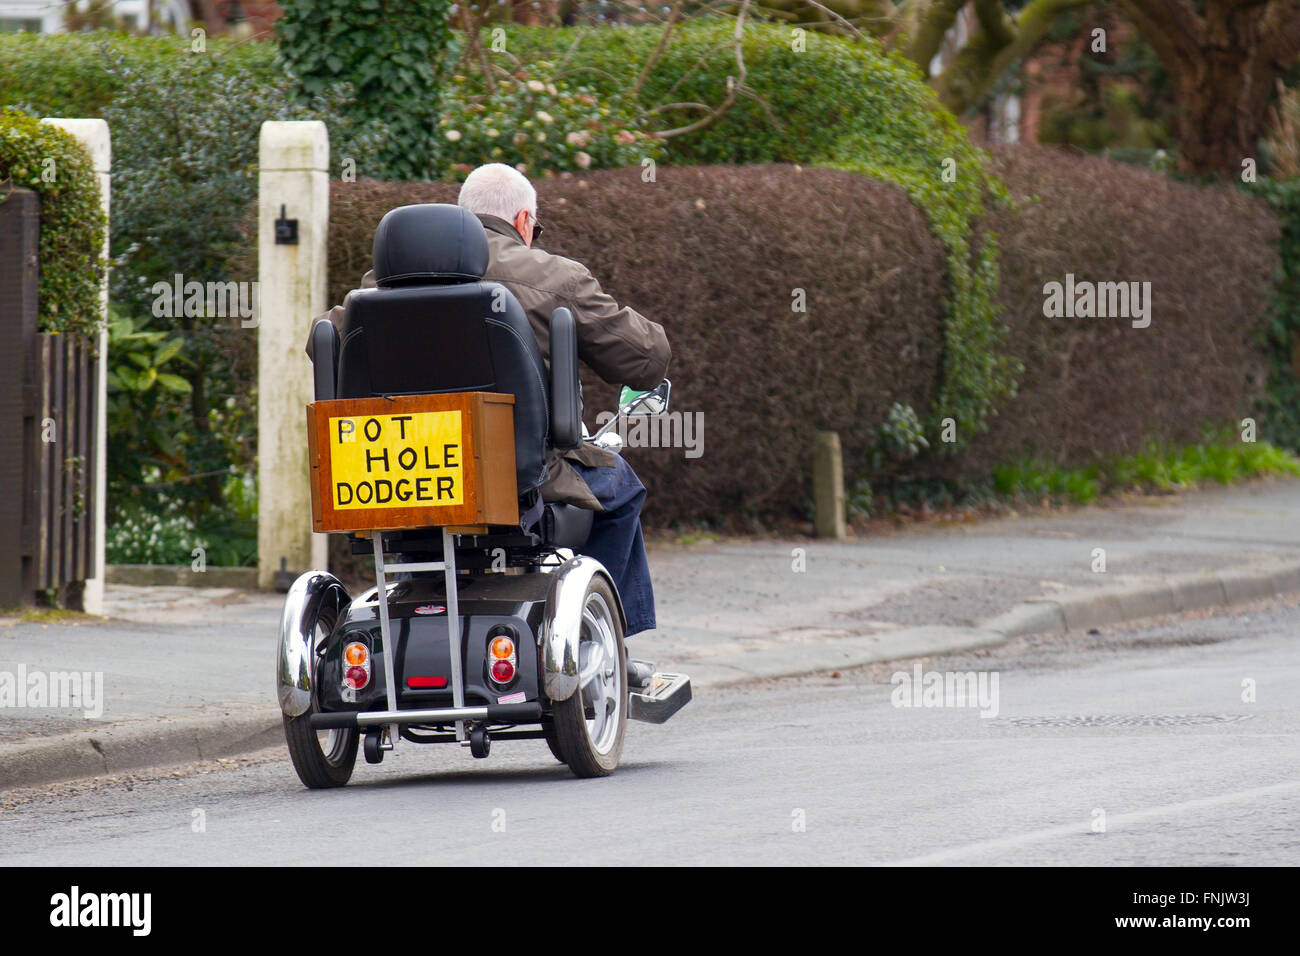 Wheelchair user atTarleton, Lancashire, UK. 16th March, 2016.  Senior, Pensioner  protestor displaying sign highlighting - Stock Image